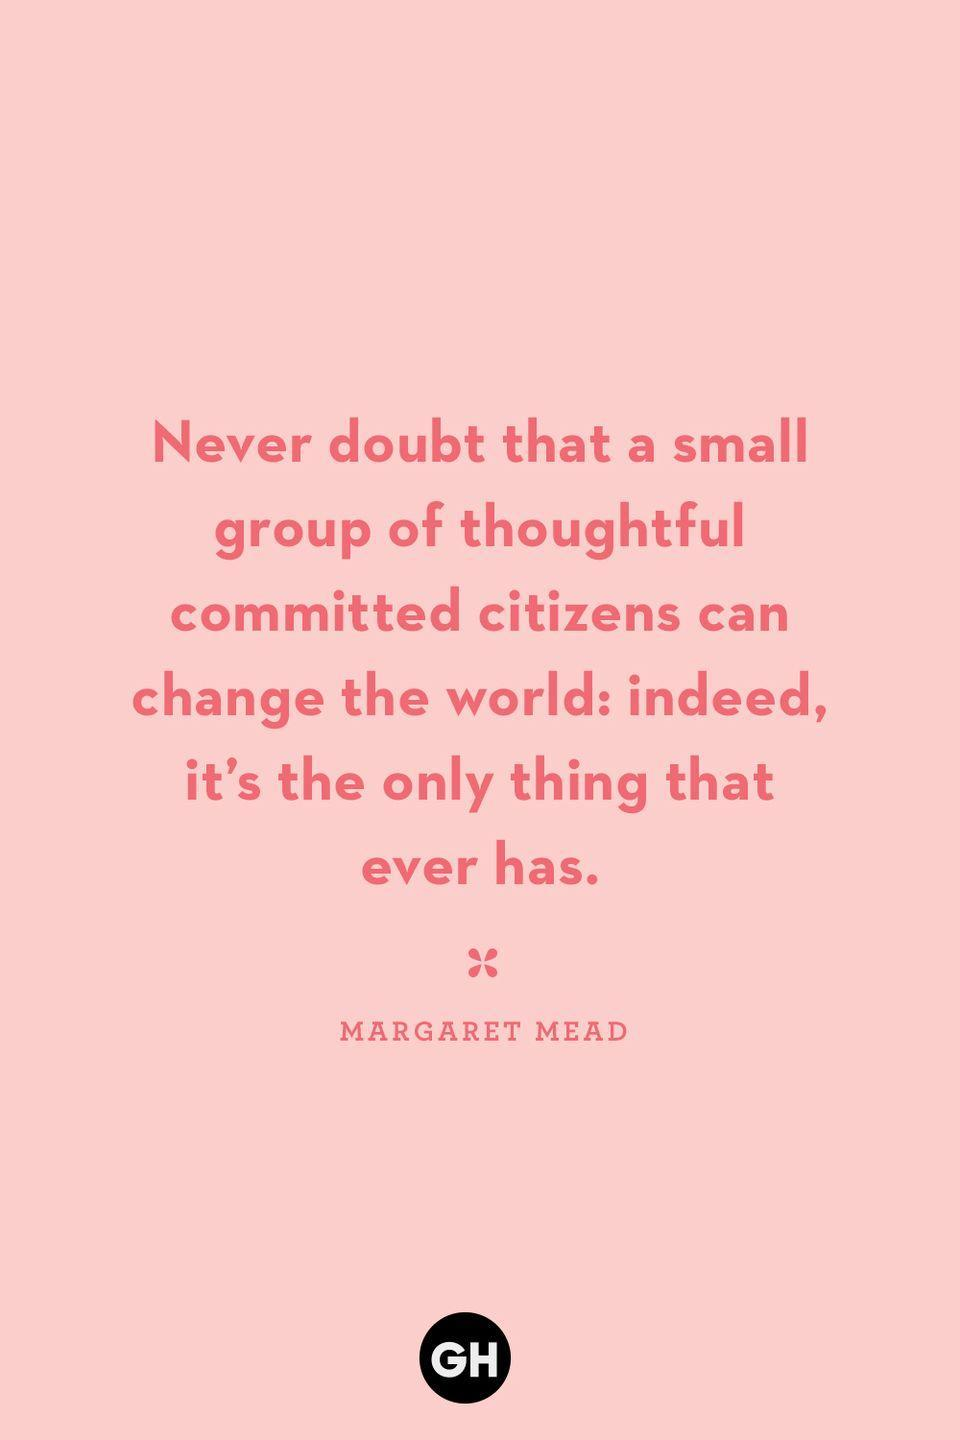 <p>Never doubt that a small group of thoughtful committed citizens can change the world: indeed, it's the only thing that ever has.</p>